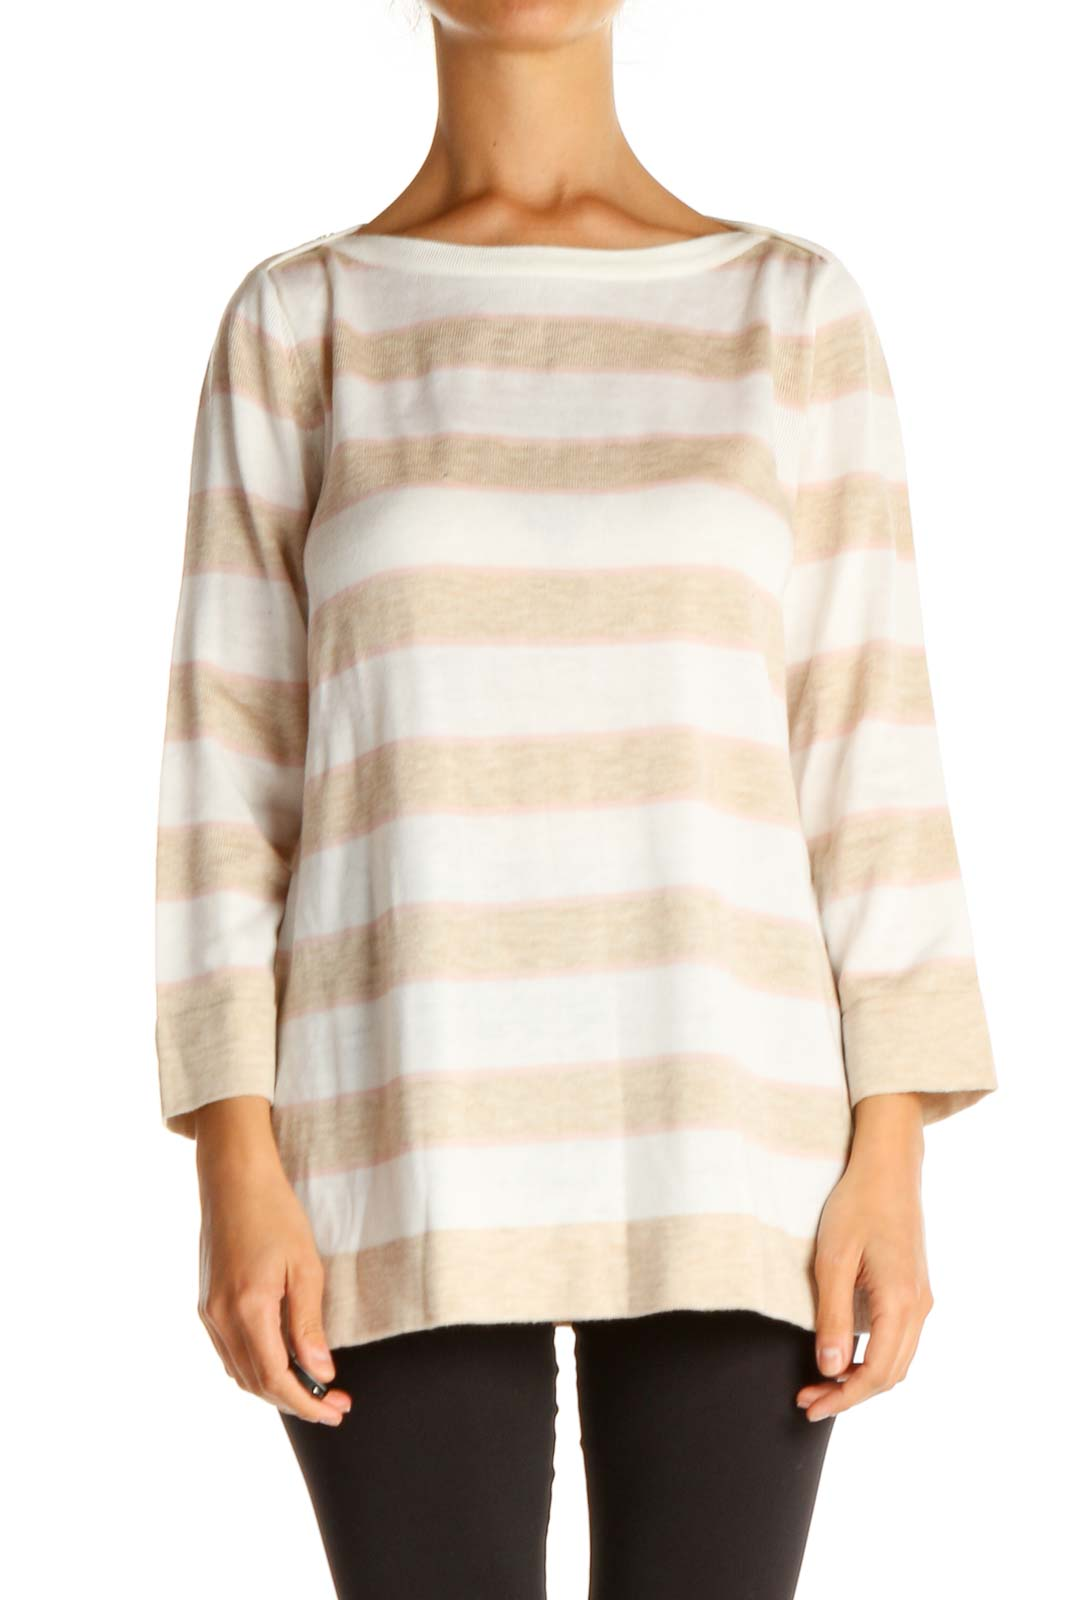 White Striped All Day Wear Sweater Front